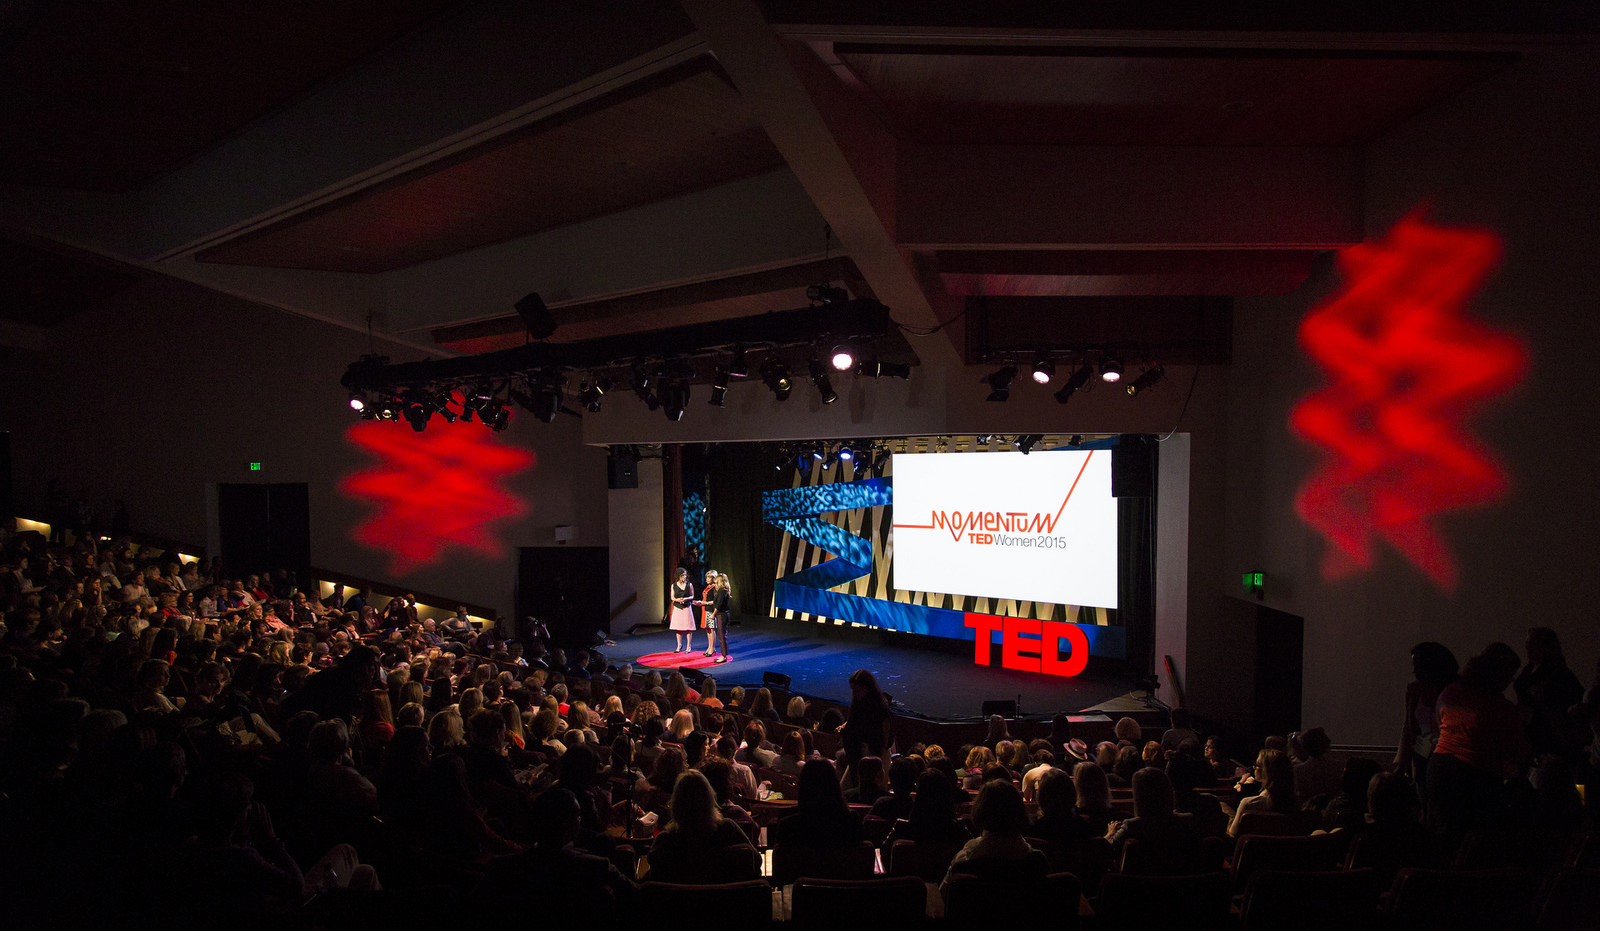 TEDWomen 2015 is taking place in the Steinbeck Forum, the very same theater where TED began in 1984. Soon after this event, the theater will be demolished. Photo: Marla Aufmuth/TED